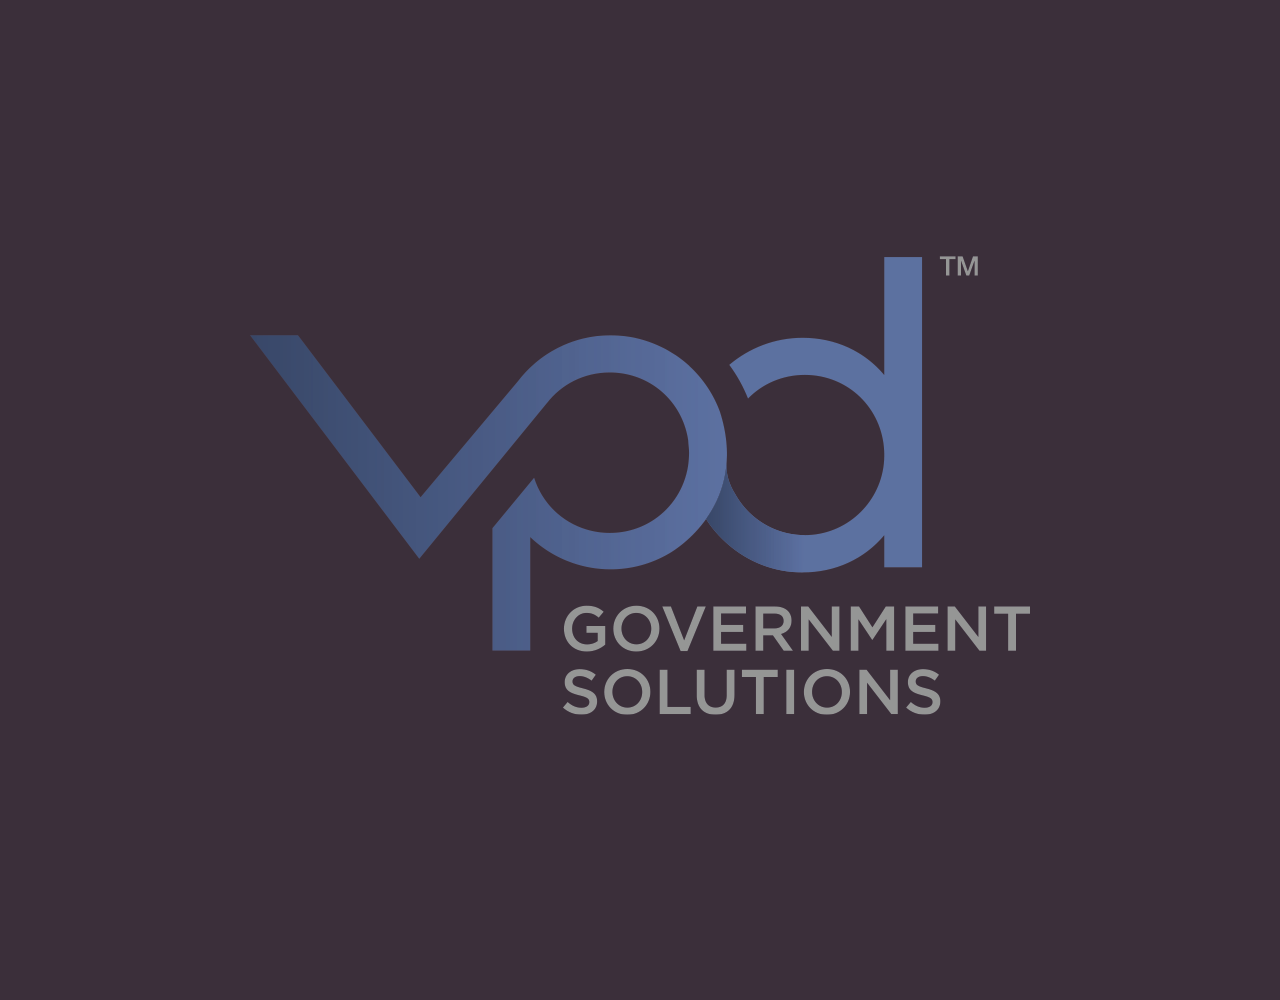 VPD Government Solutions Identity